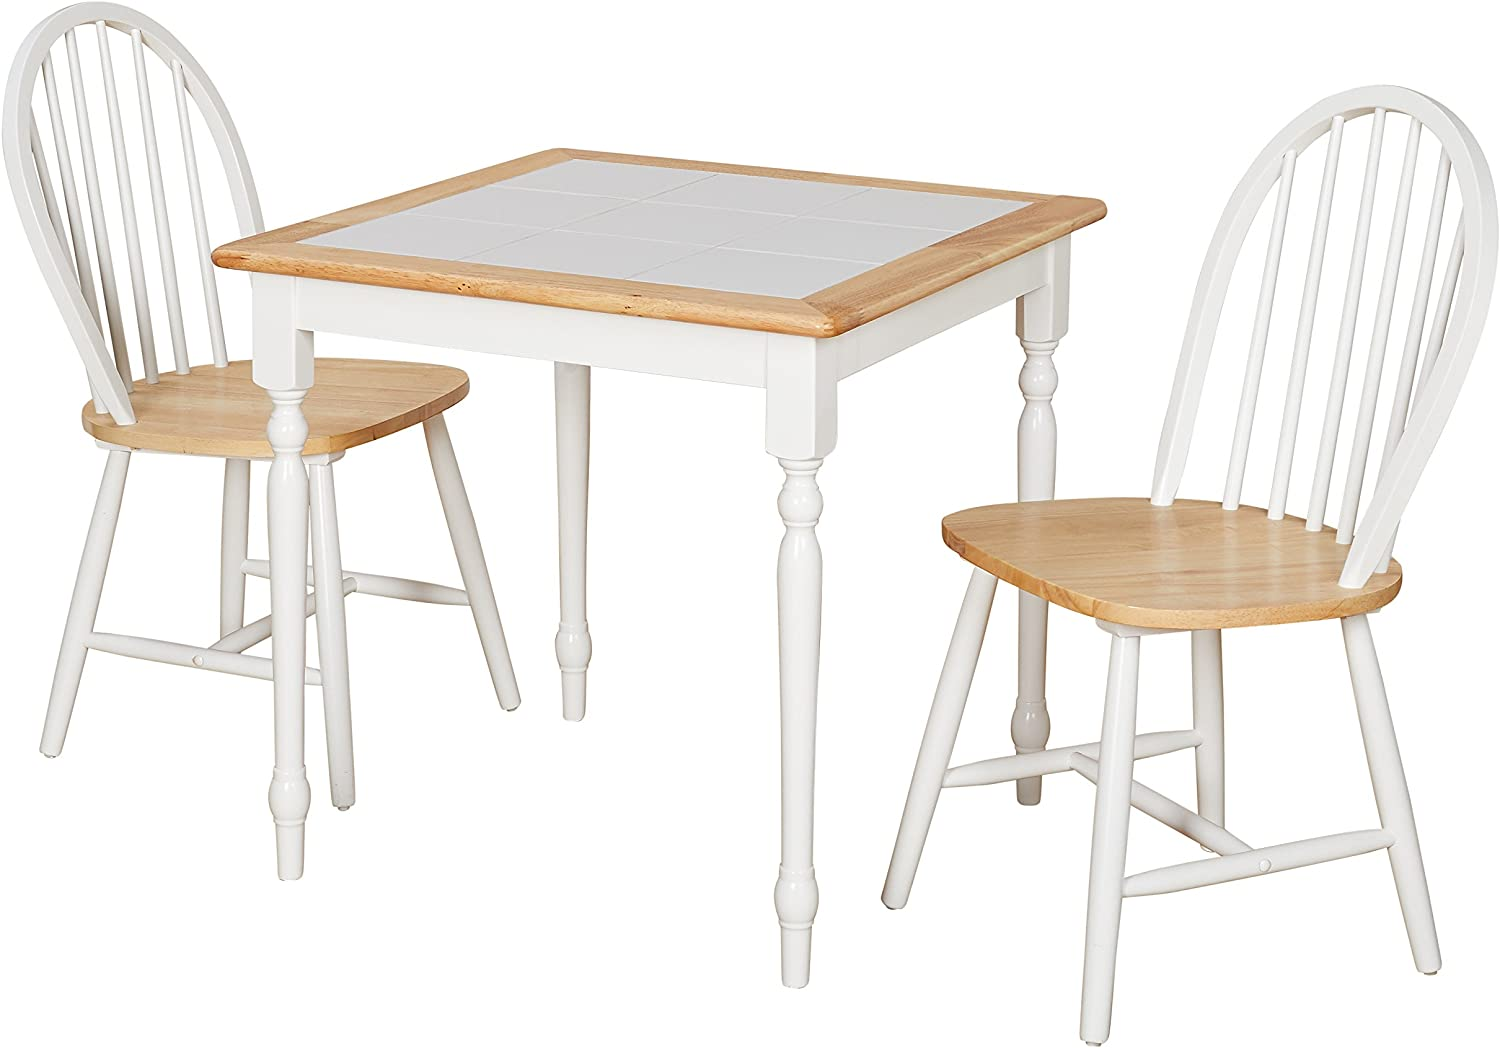 Target Marketing Systems Modern Tile Top Kitchen Dining Room Set, 3 Piece, Natural White